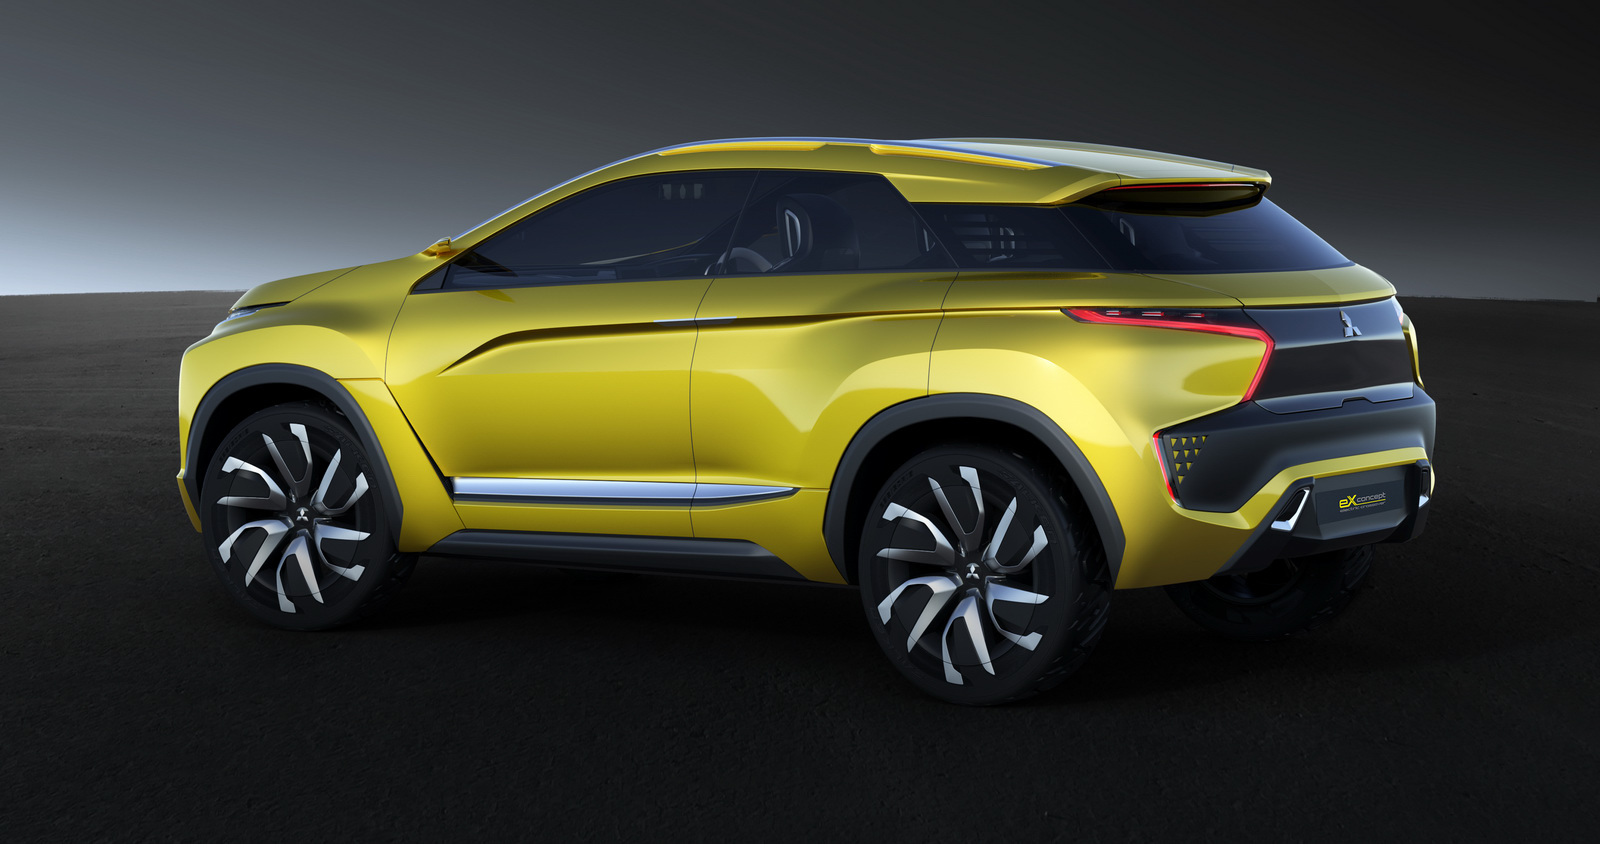 Mitsubishi Previews Their First Fully Electric SUV With ...